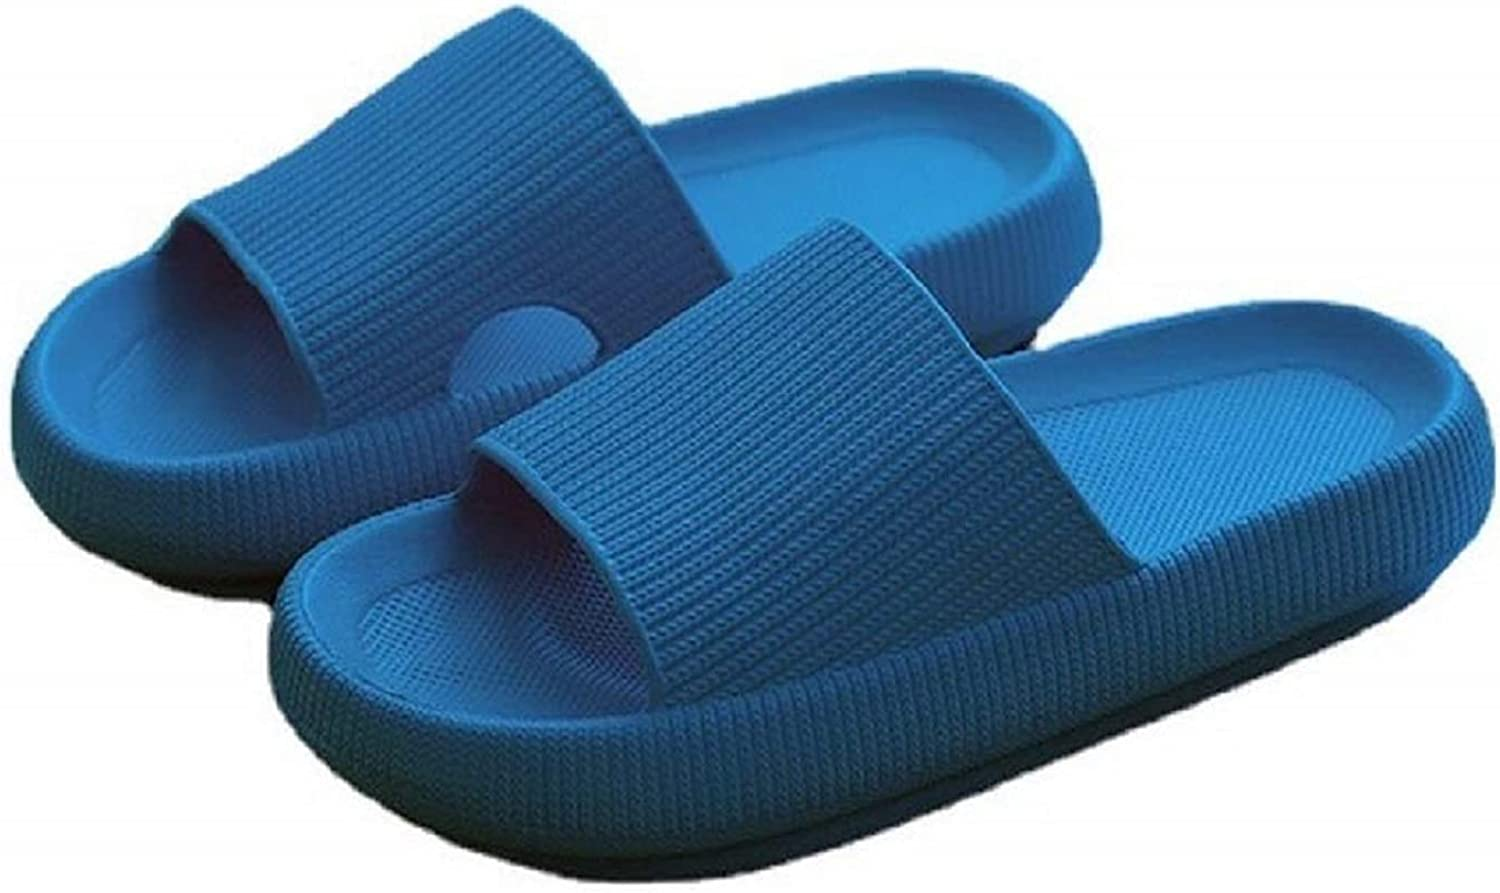 Seropian Slippers for Sales sale Women and Men Quick Slippe Outlet ☆ Free Shipping Drying Bathroom